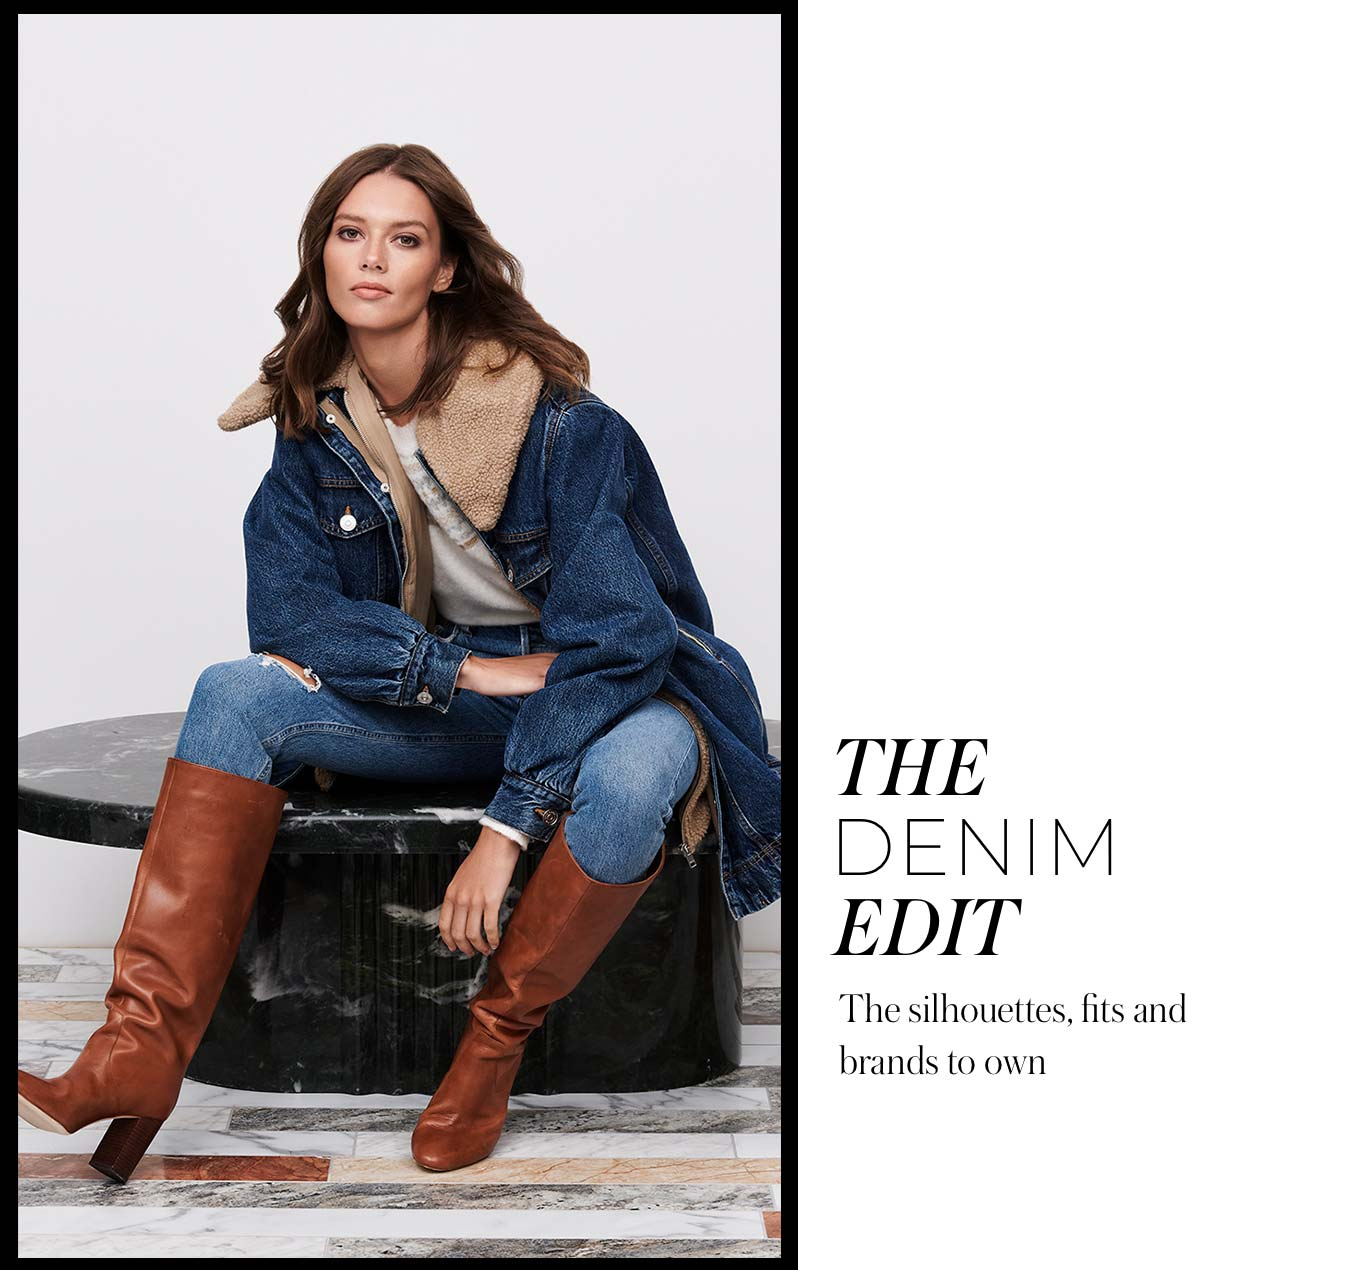 The Denim Edit The silhouettes, fits and brands to own